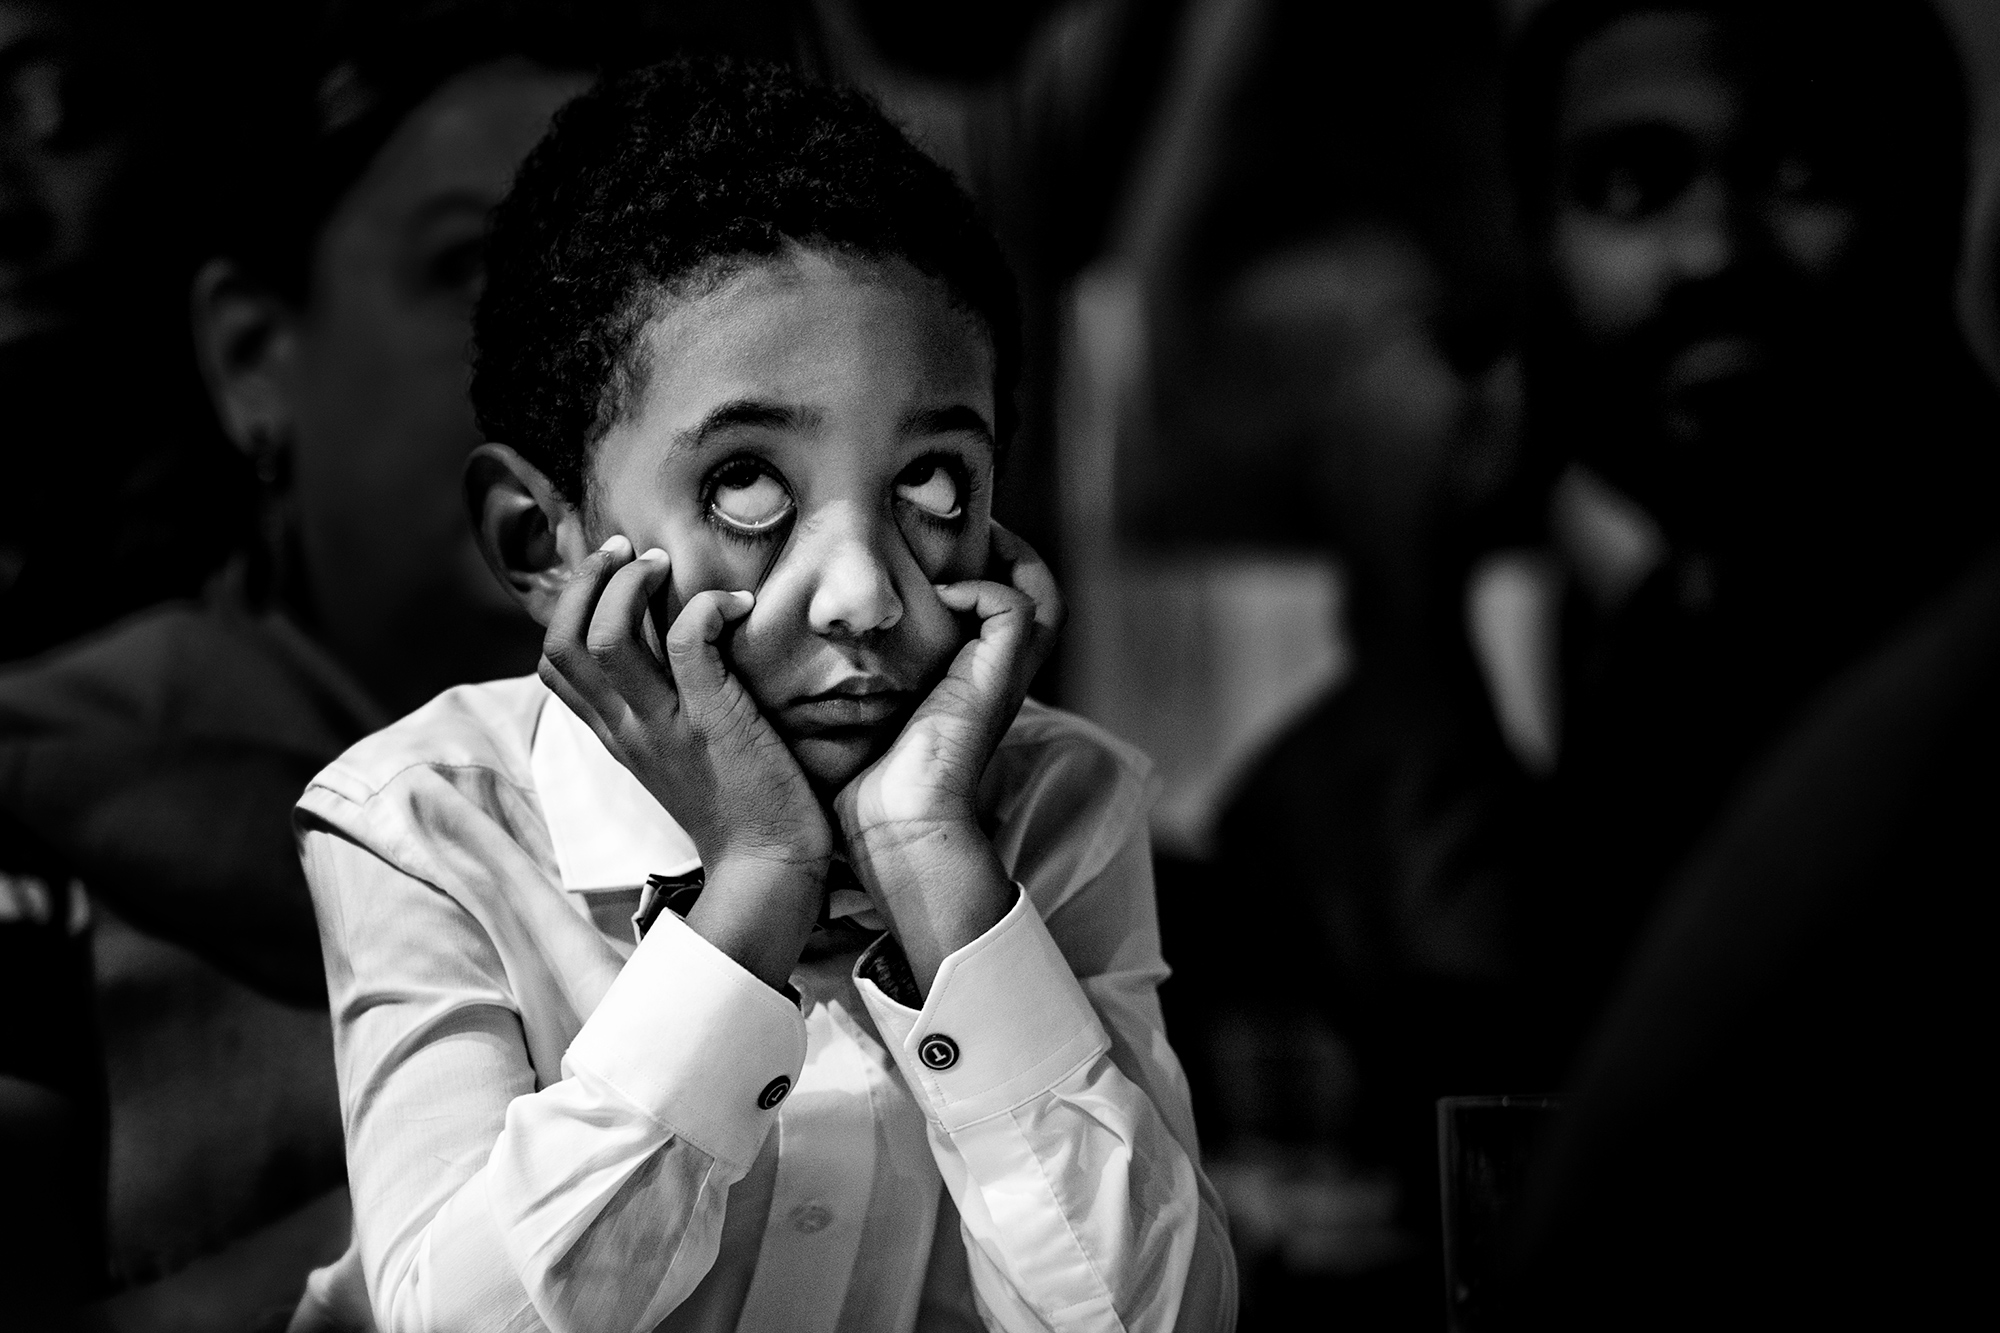 Child making a weird face - photo by Matei Horvath Photography